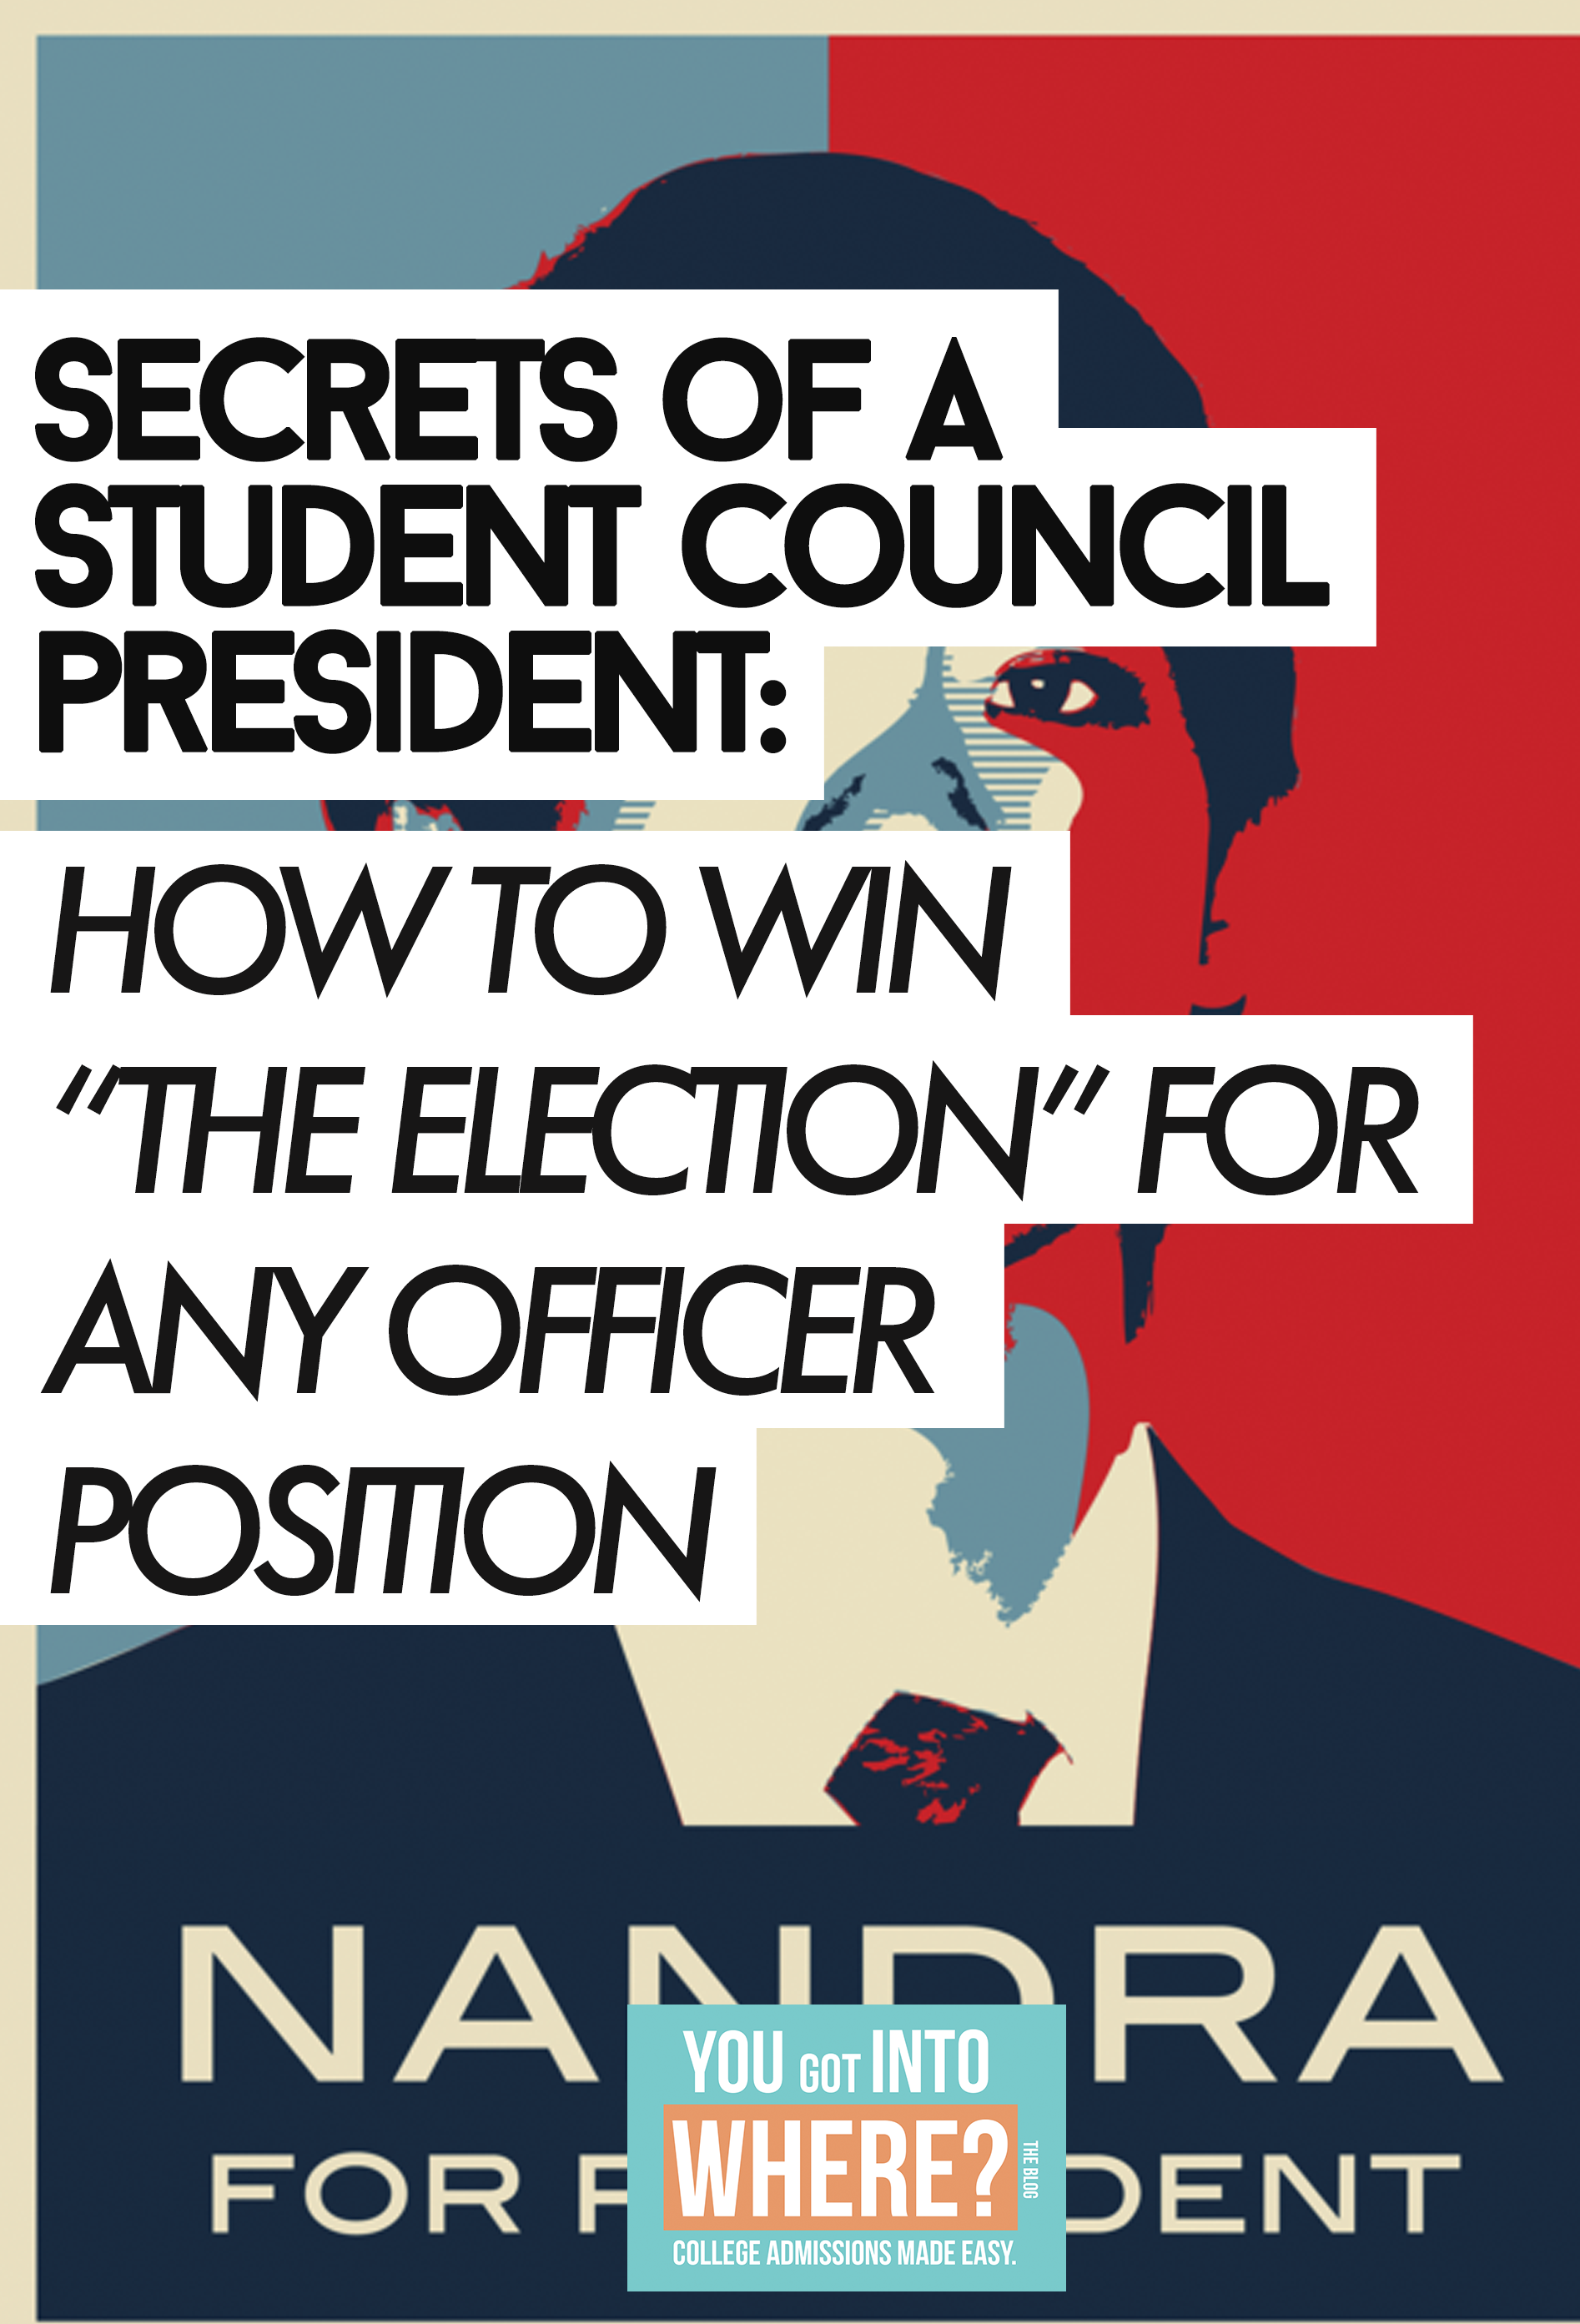 how-to-win-a-student-council-election.png